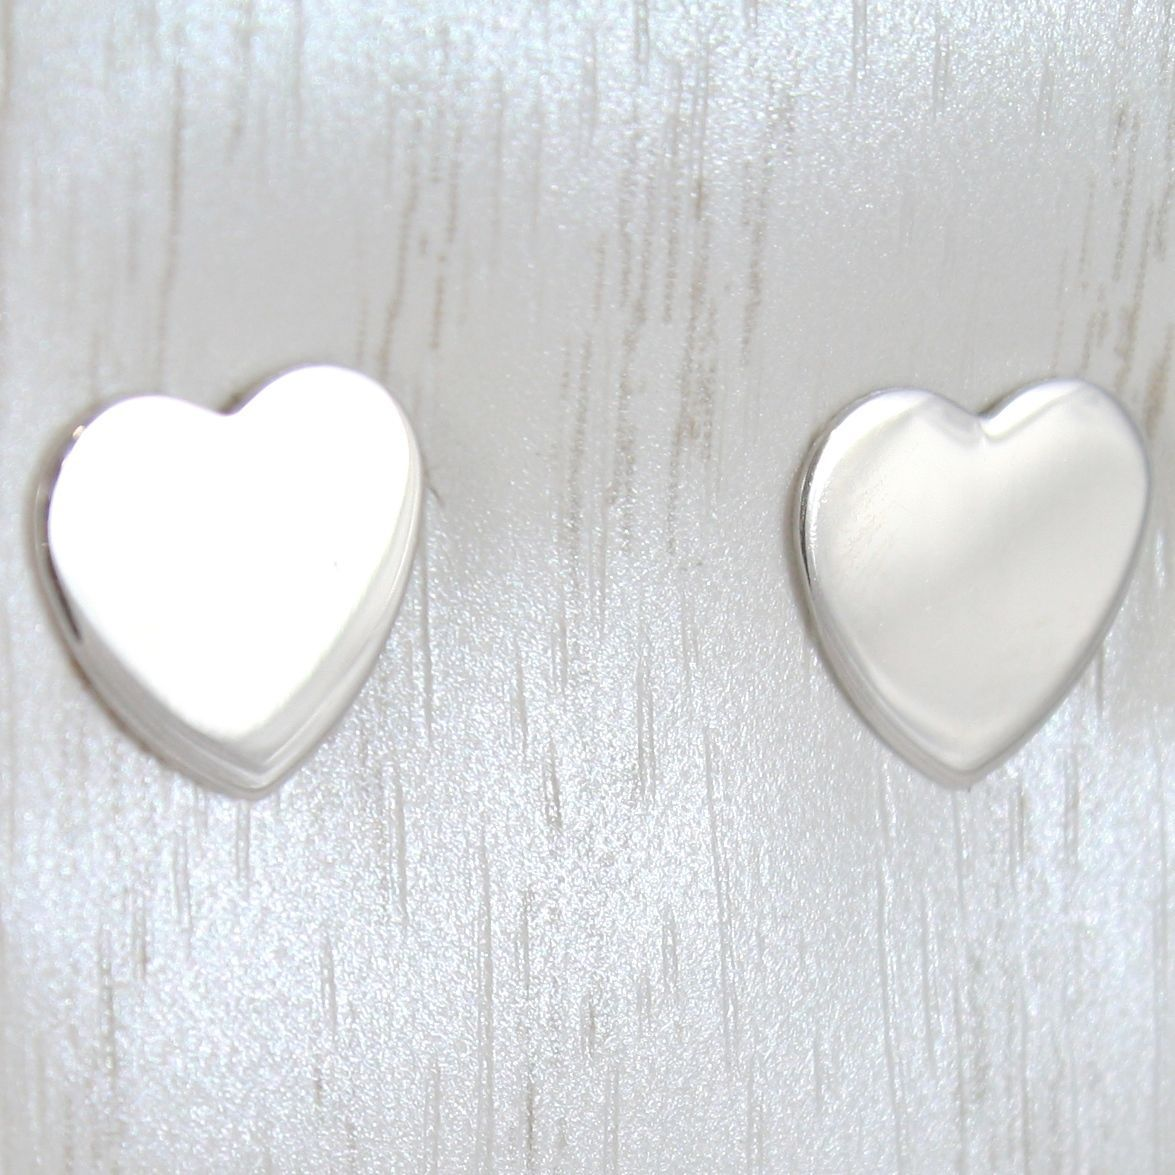 WHITE GOLD EARRINGS 750 18K LOBE, WITH HEART DISH, HEARTS LENGTH 0.9 CM